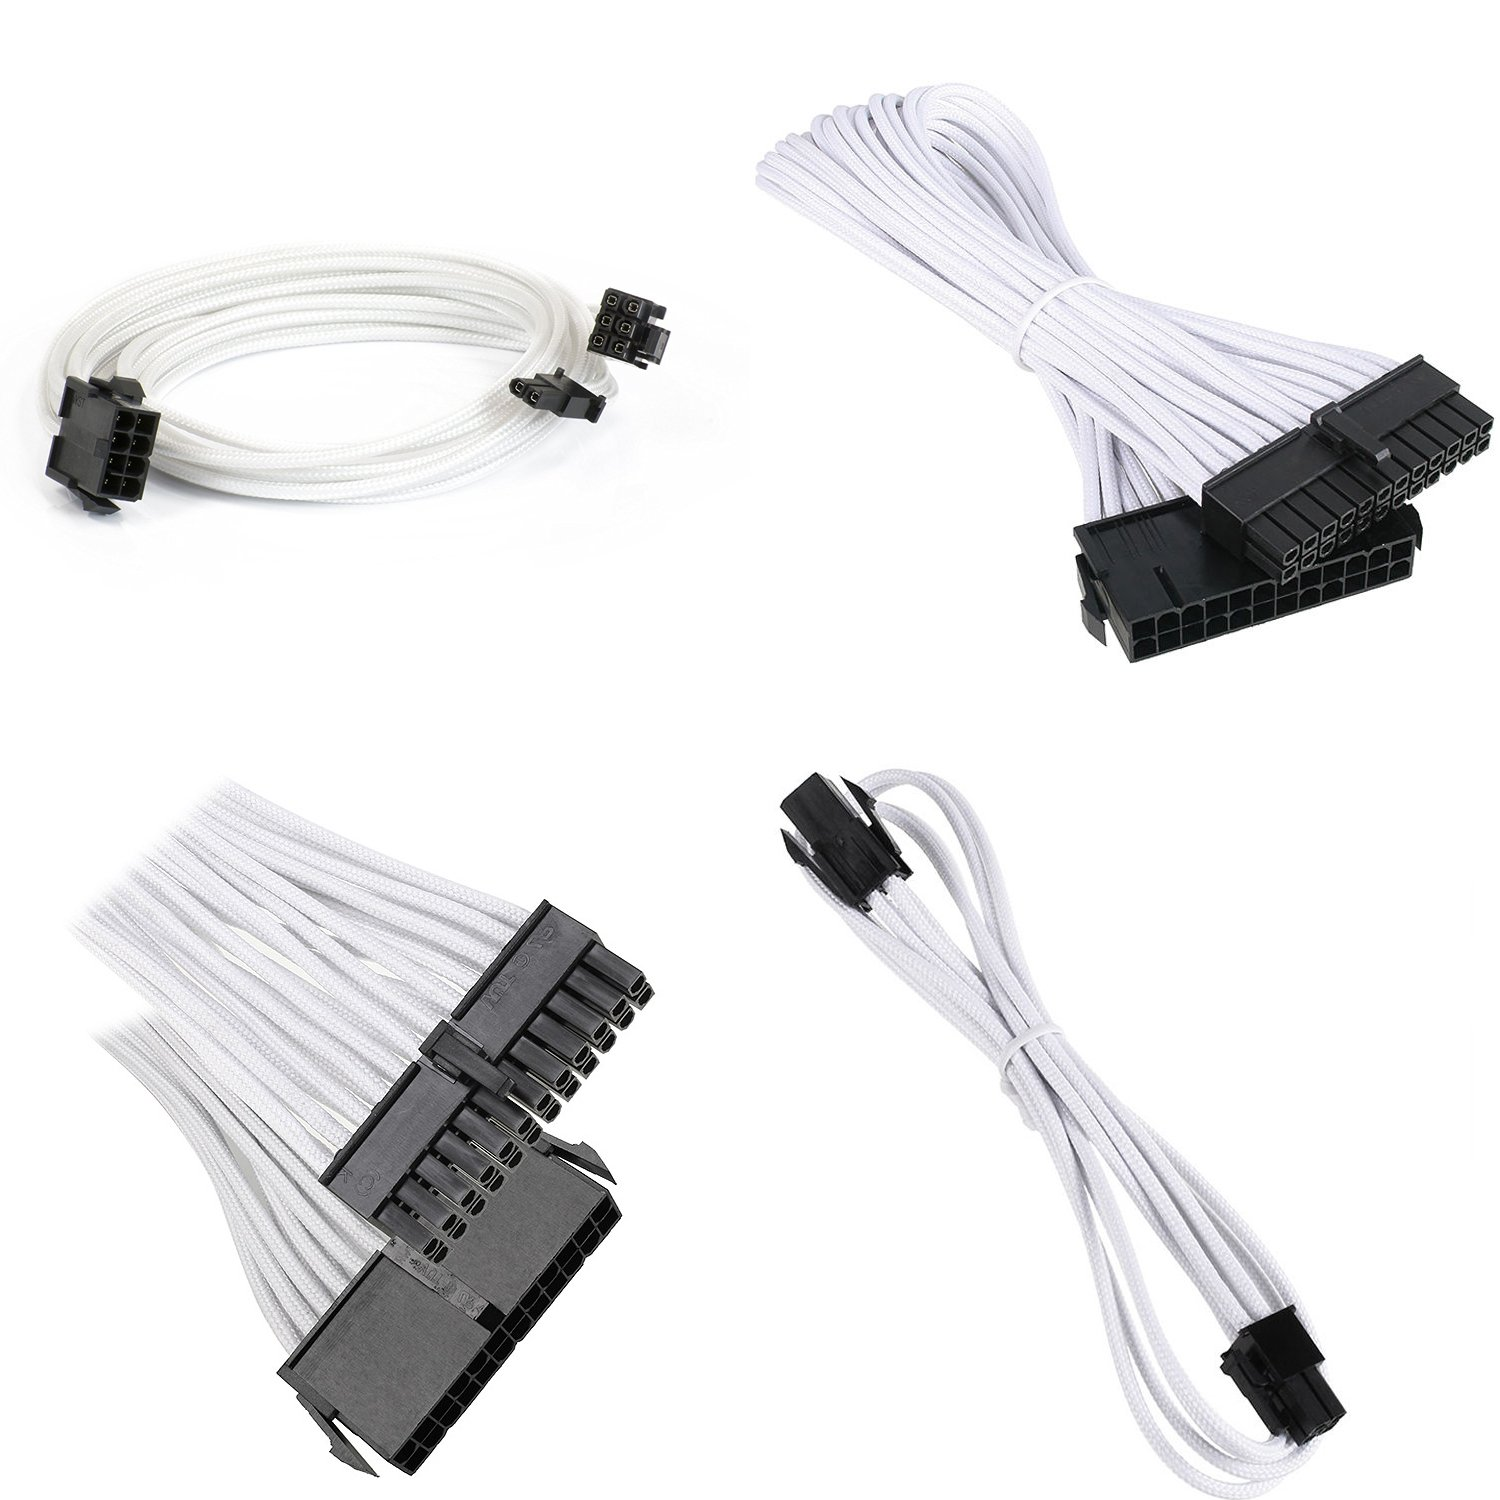 6-Pin with Cable Comb 24 Pieces Set 24-Pin 8 Pin 6 Pack 6 Pin 4 4 Pin PSU Connectors White 8-Pin 24 Pin CloverTale Sleeved Cable White Braided ATX Sleeved Cable Extension Kit for Power Supply Cable Kit